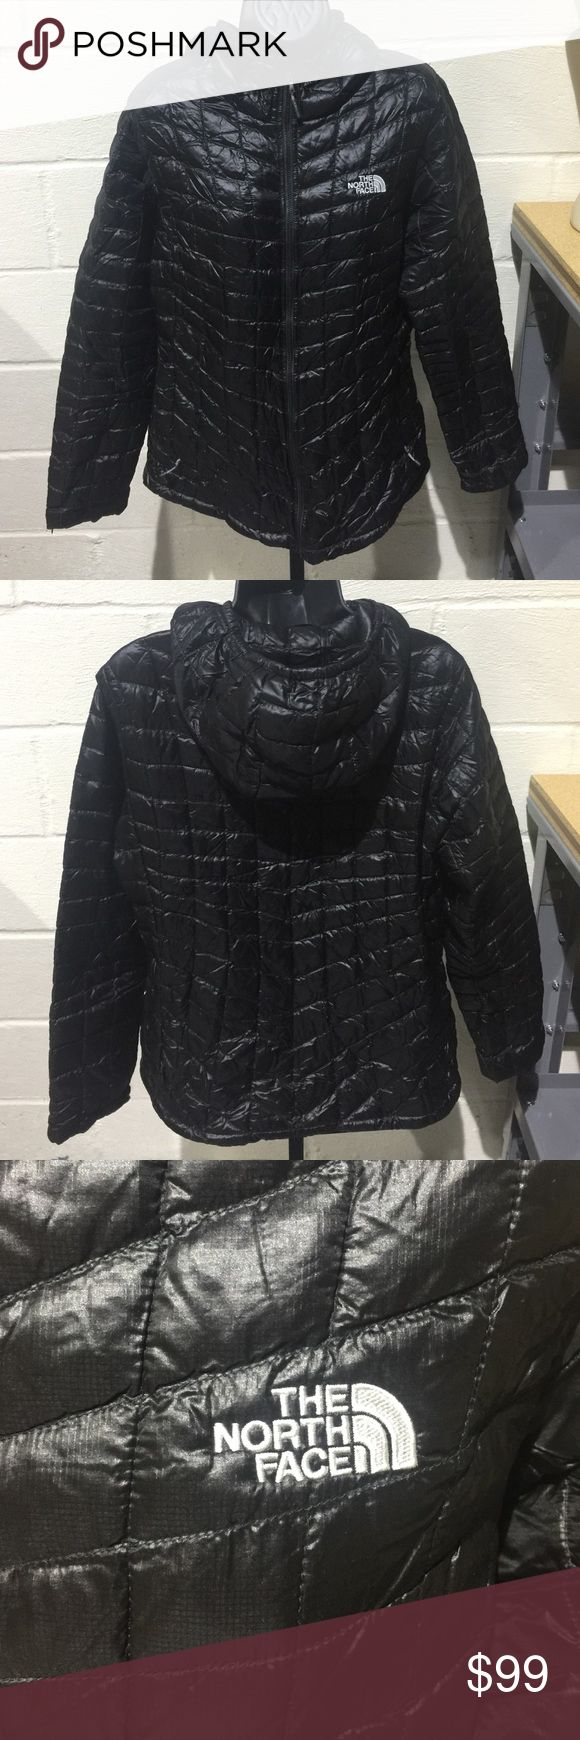 The North Face Women's Full-Zip Thermoball Jacket This sleek black North Face Thermoball jacket is brand new without tags.  Contours to your body, insulated, water repellent and in perfect condition!! North Face Jackets & Coats